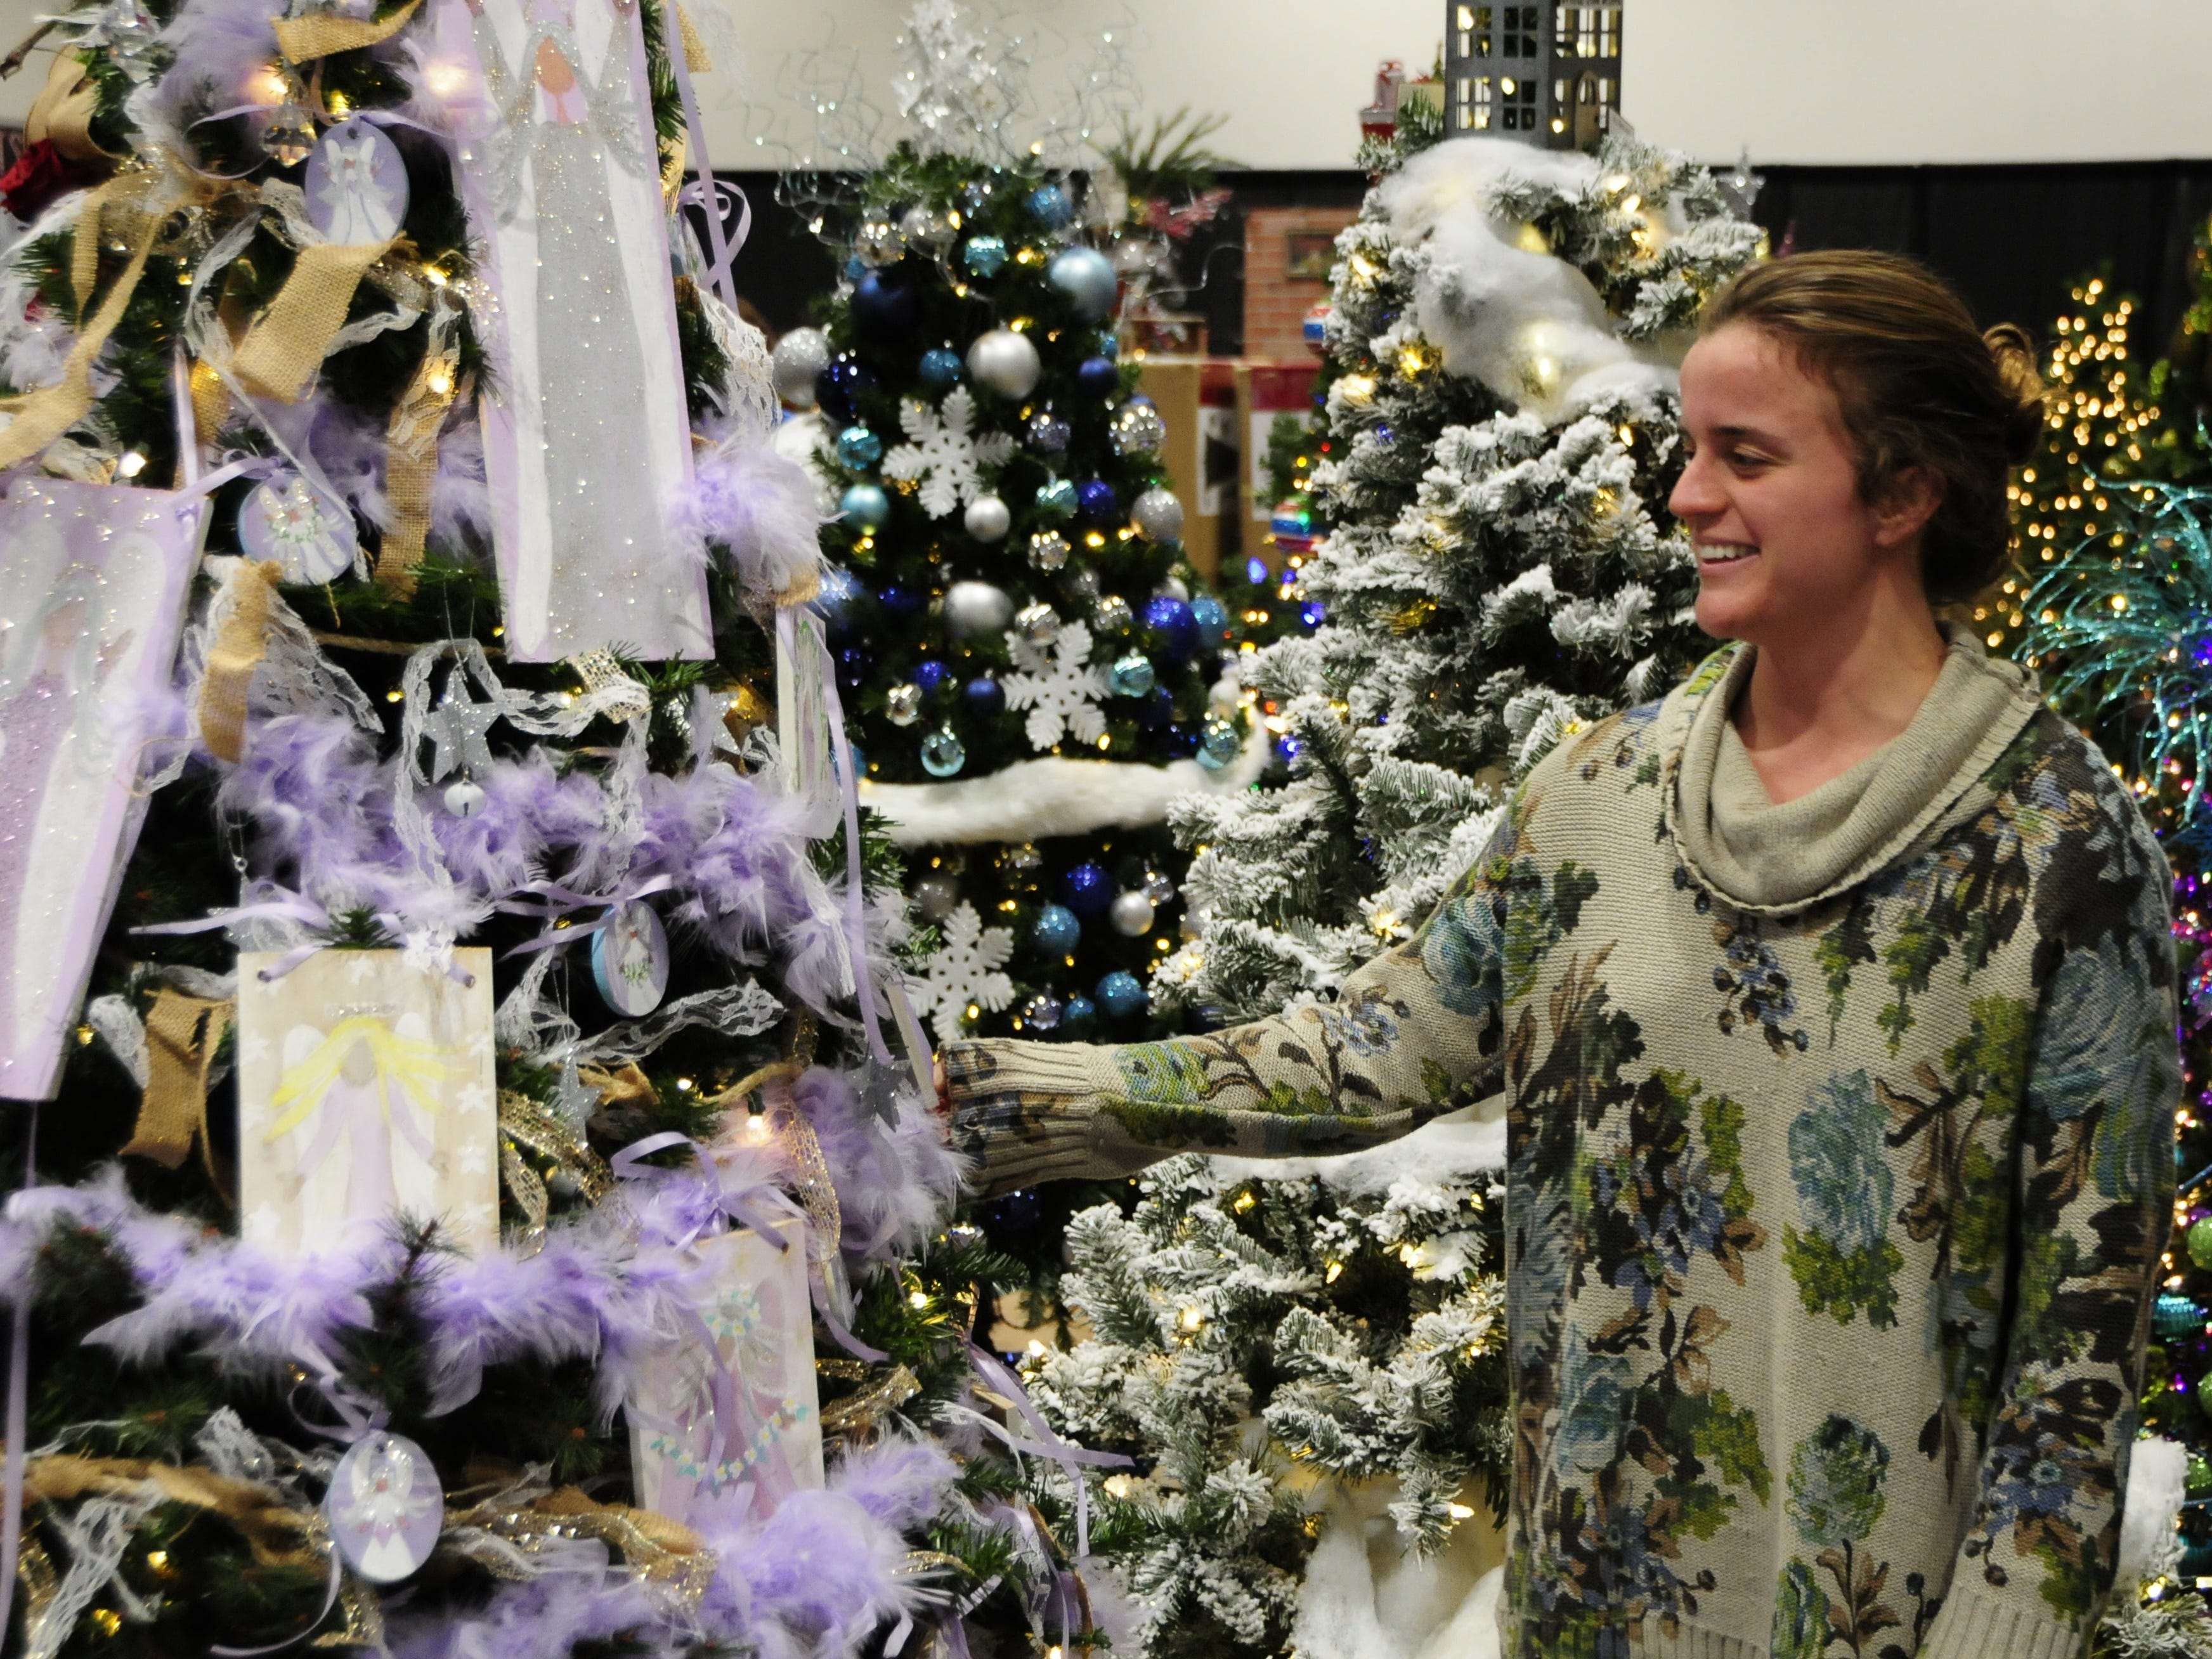 Jacqueline Gutenkunst admires a tree Wednesday during preparations for the Festival of Trees, Friday through Sunday at the Blue Water Convention Center.